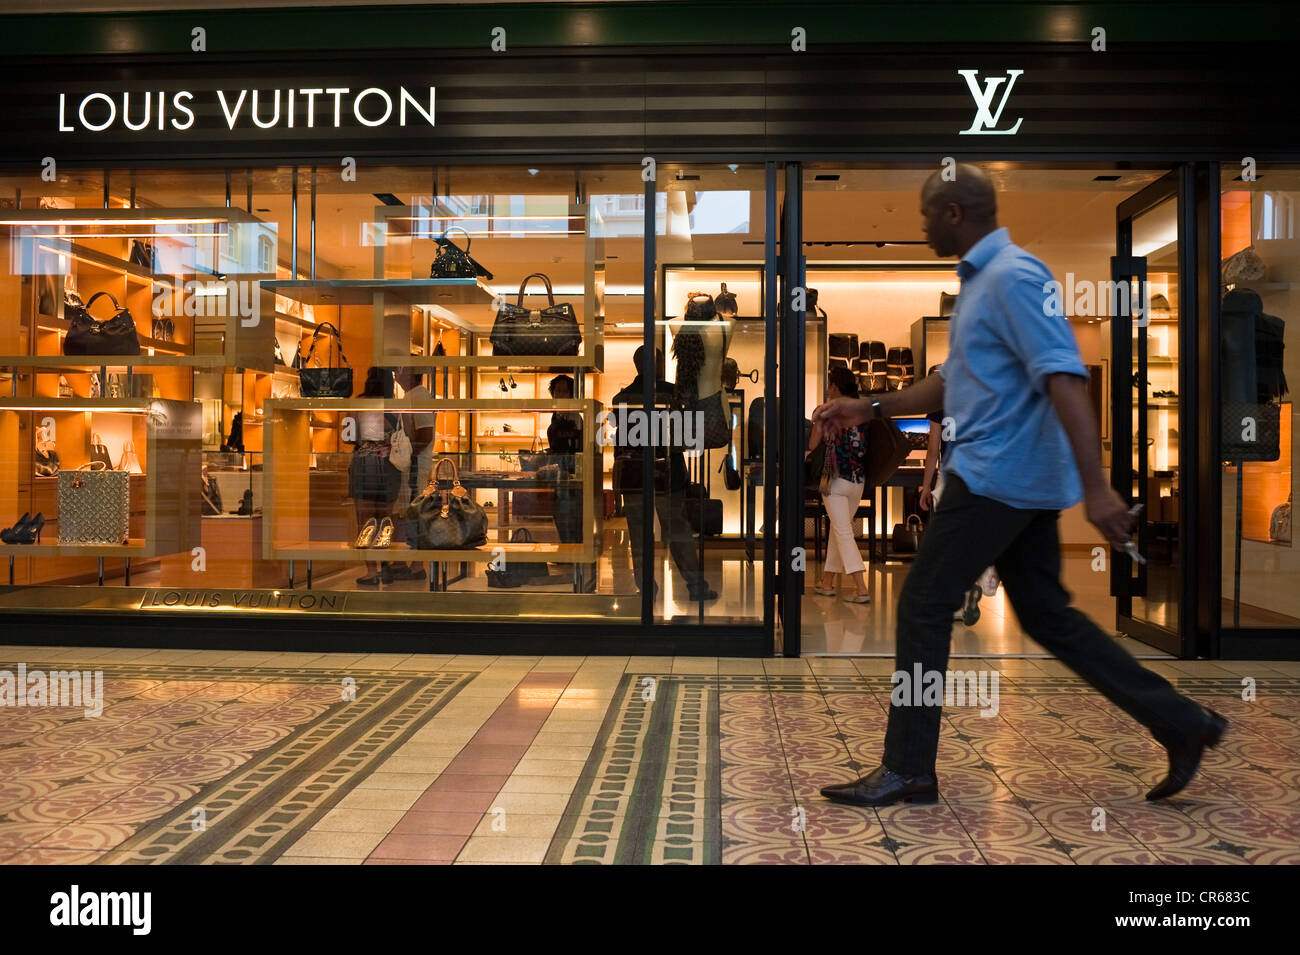 97b38b6f500 Victoria Wharf Shopping Stock Photos   Victoria Wharf Shopping Stock ...